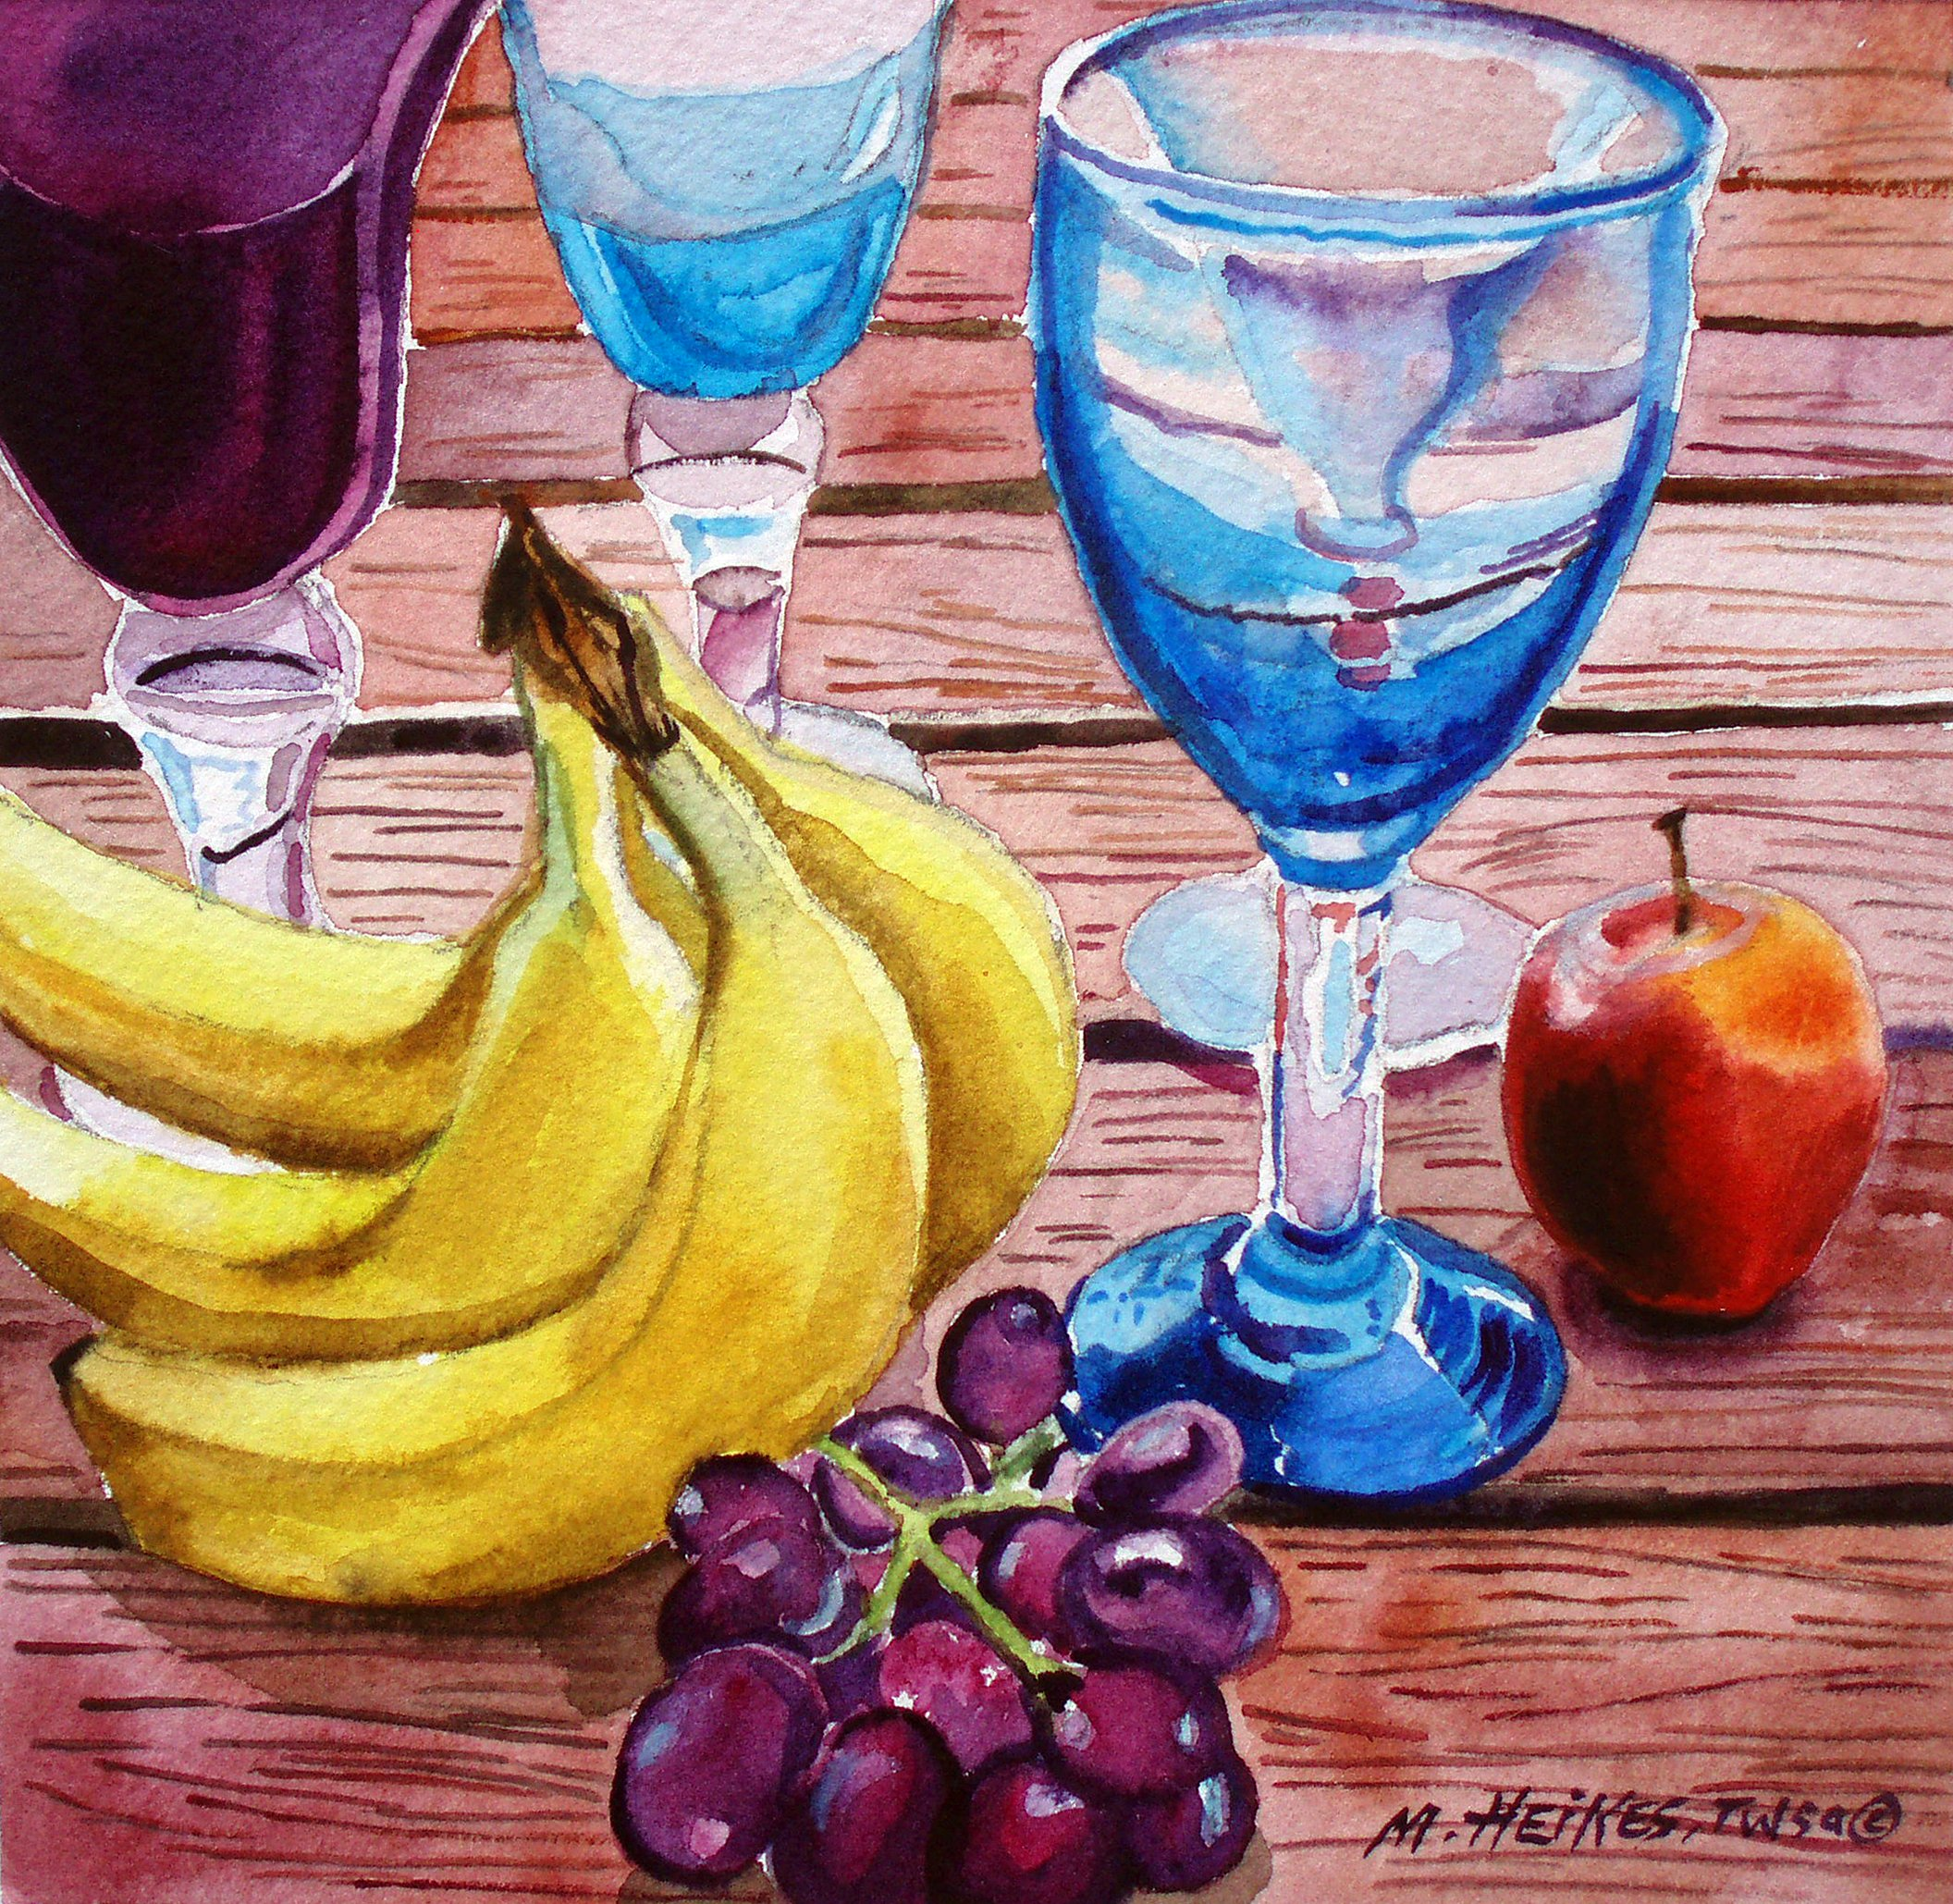 Grapes & Bananas